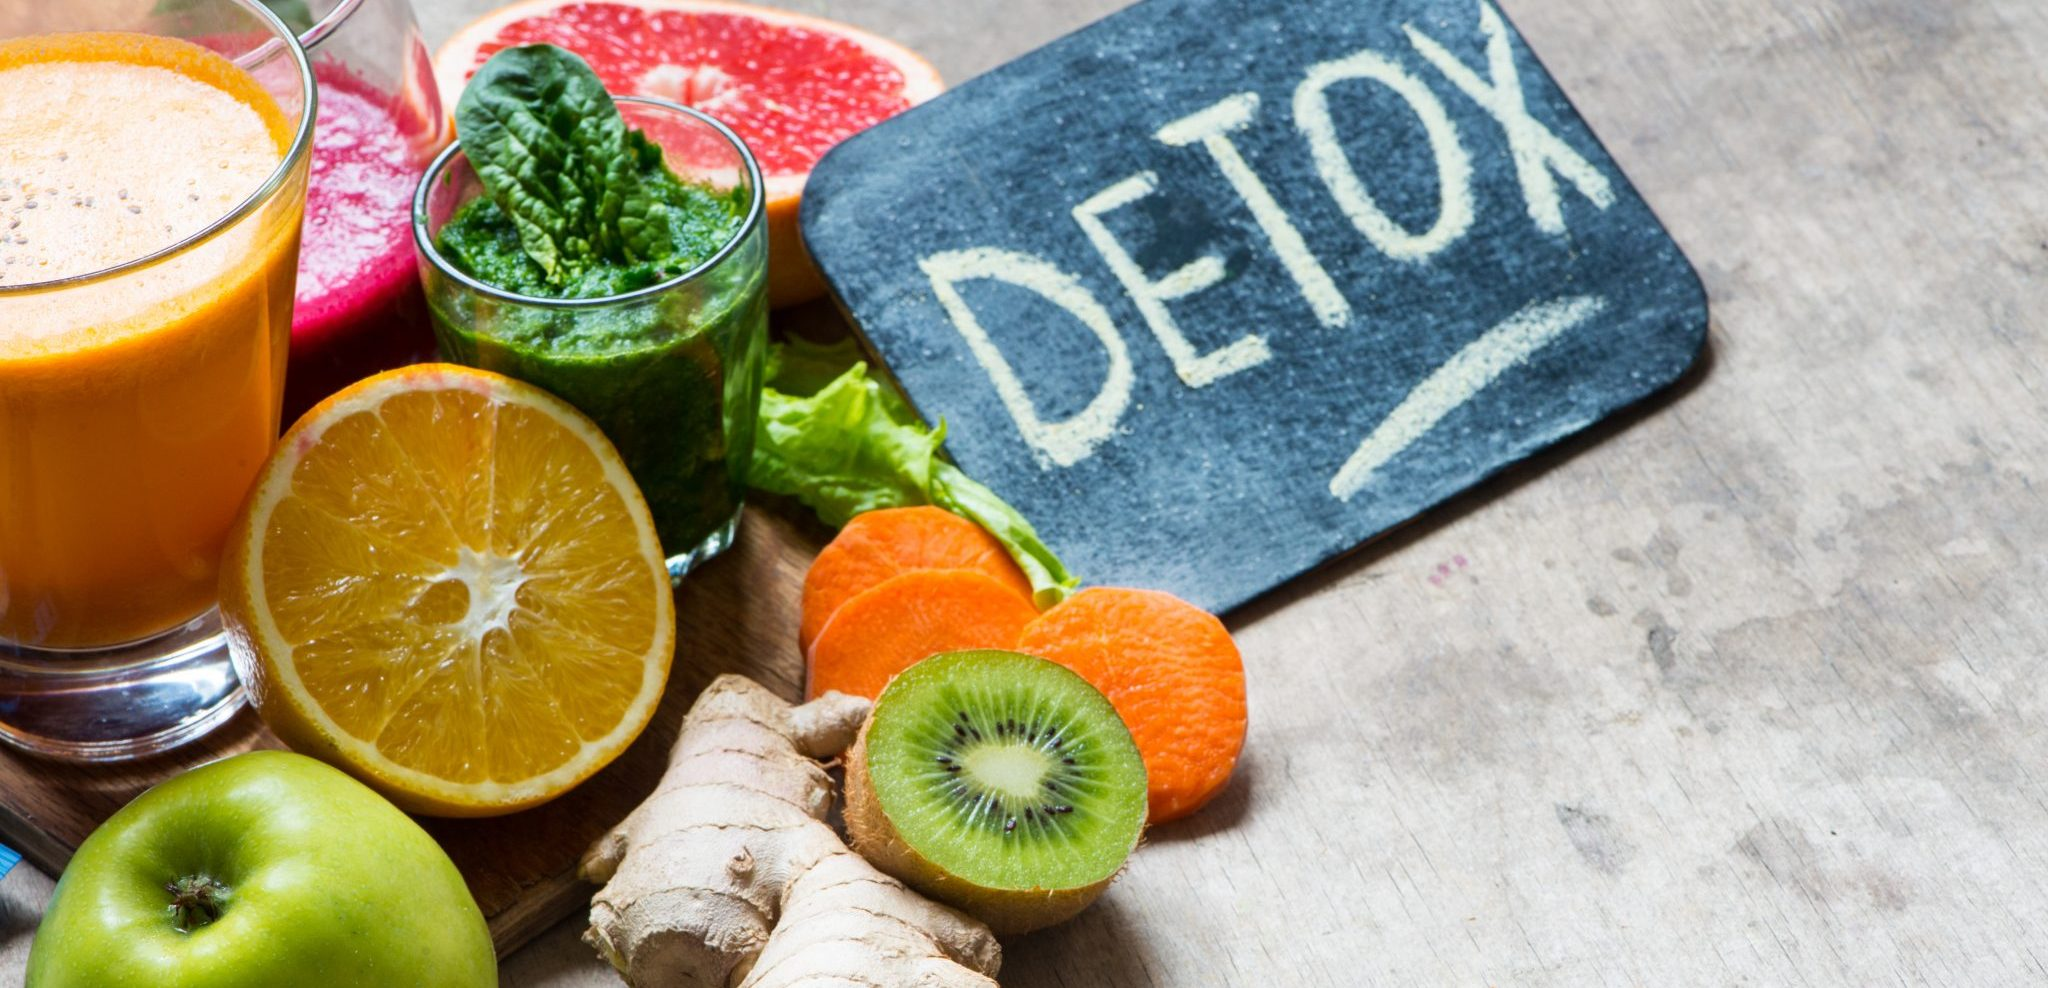 Easy-to-Make Detox Drinks to Cleanse Your Most Vital Organs